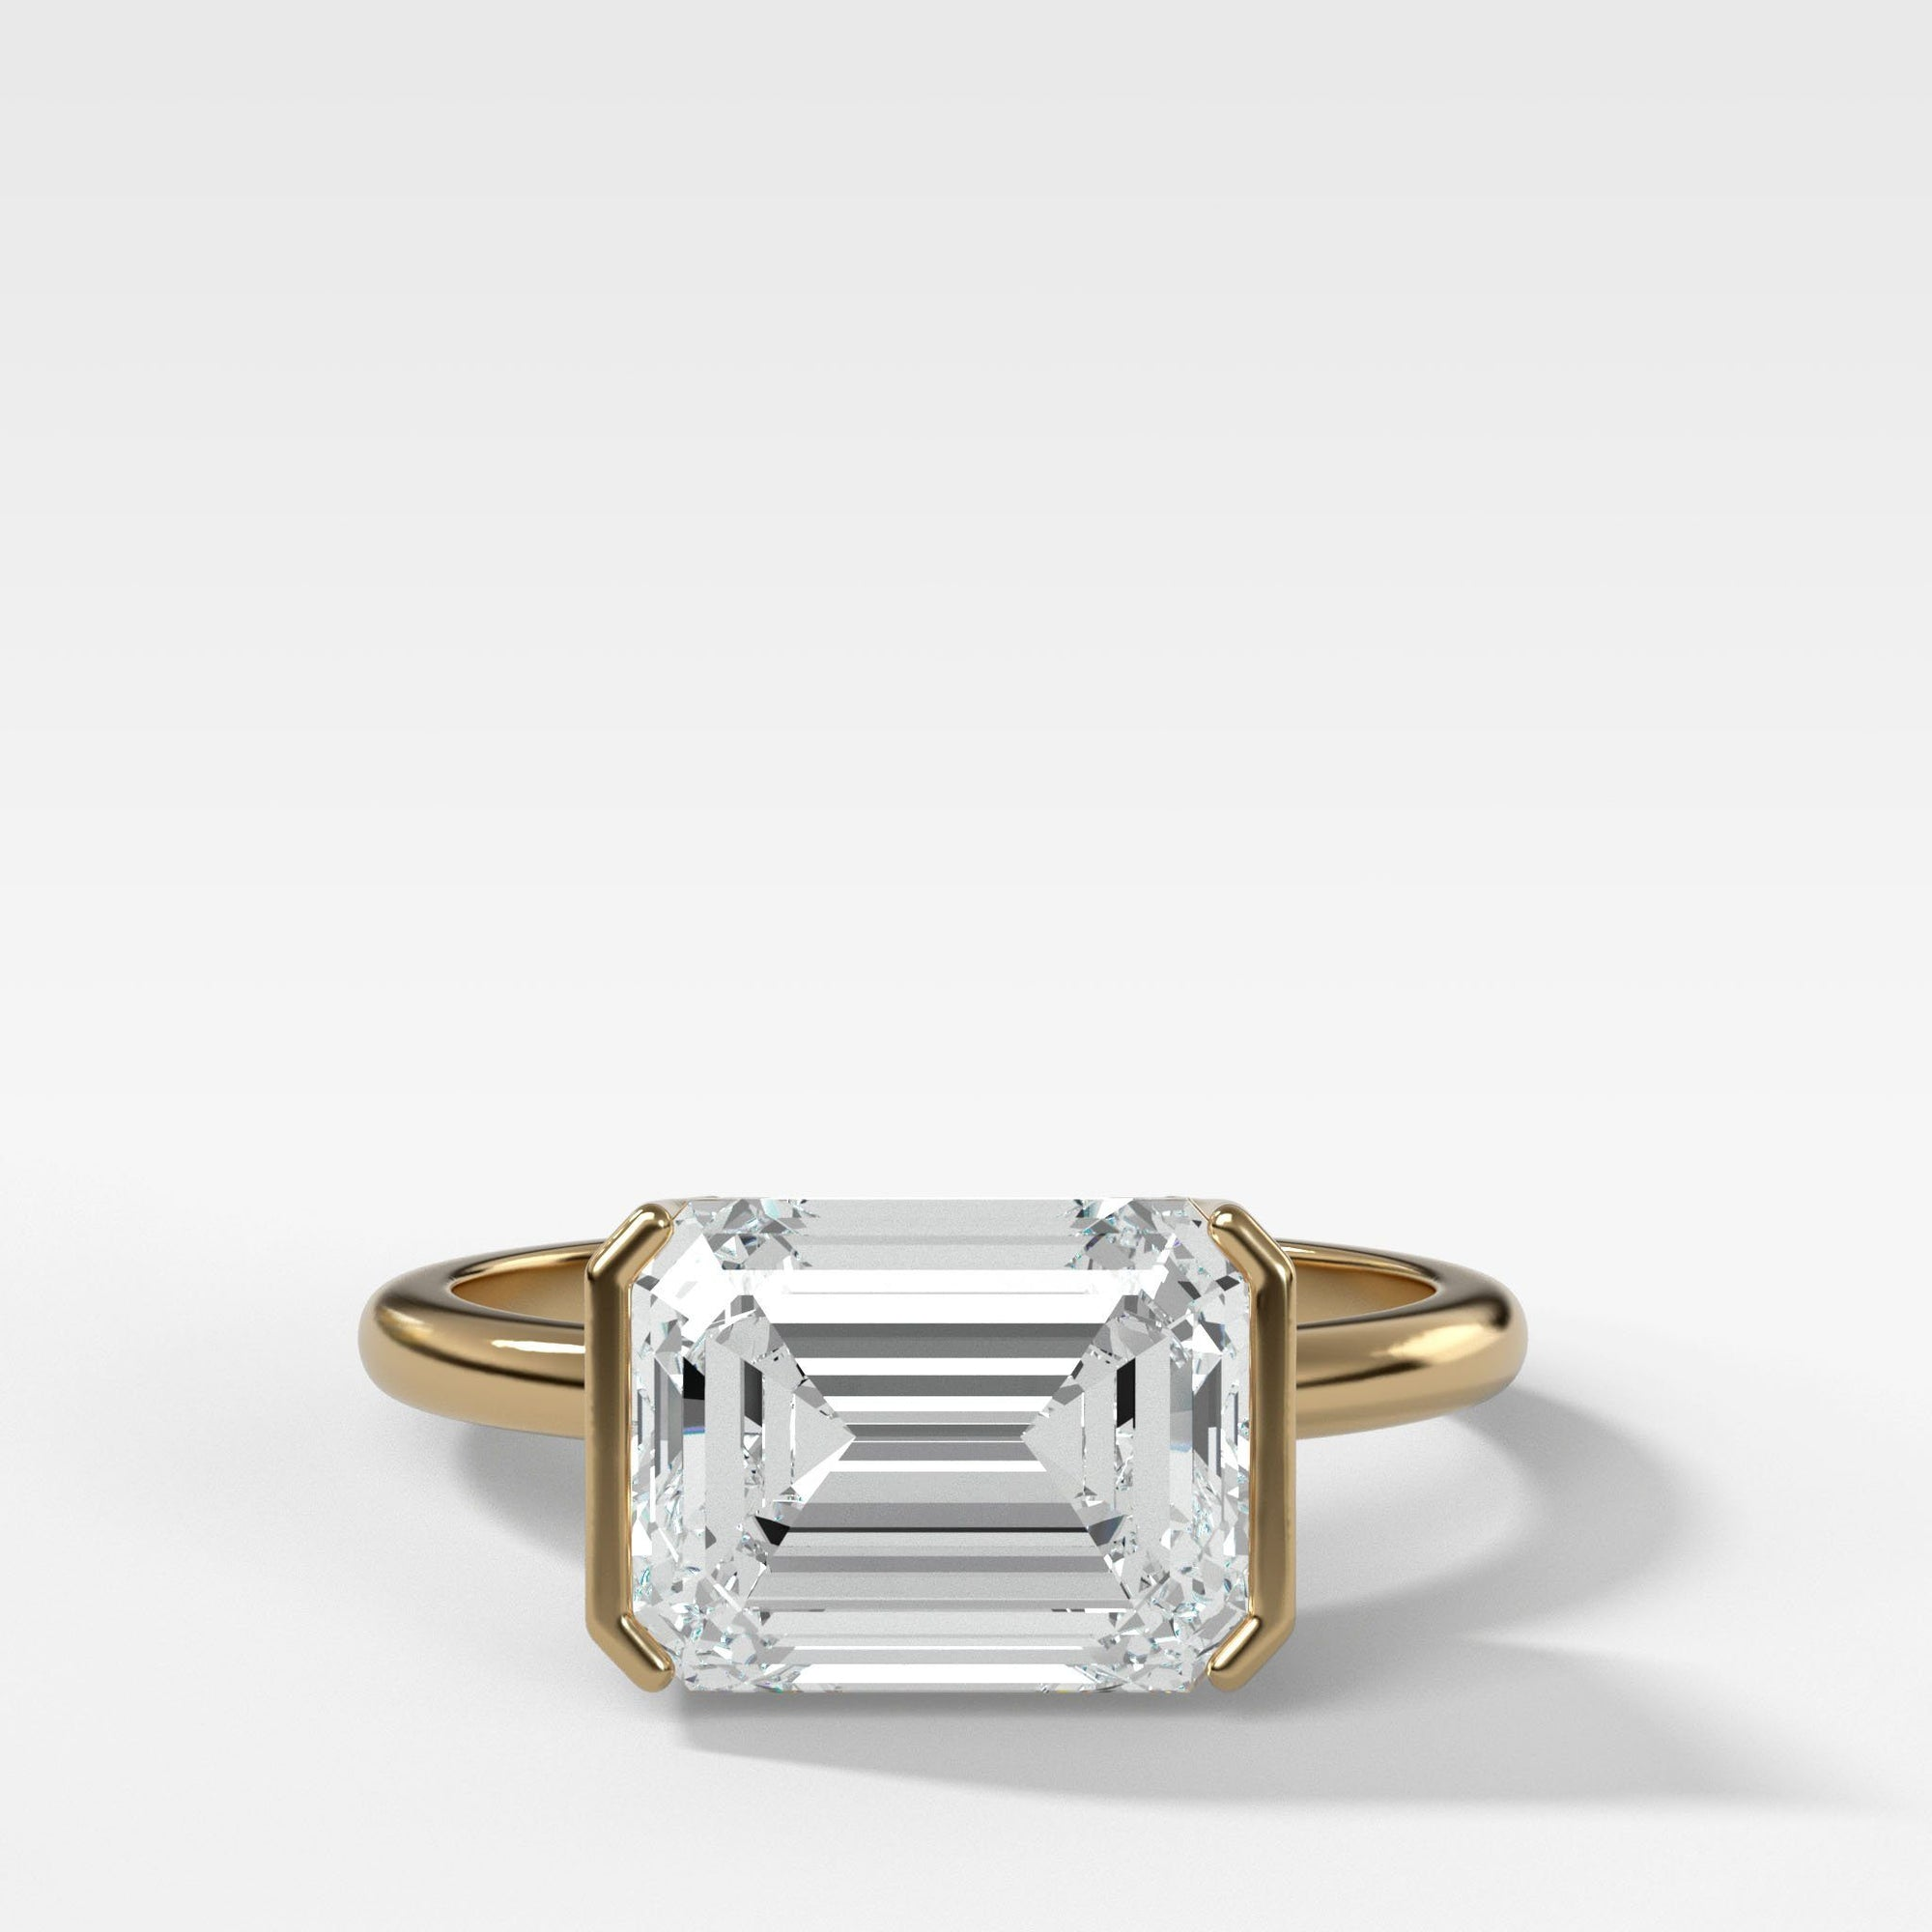 East West Half Bezel Solitaire Engagement Ring With Emerald Cut Engagement Good Stone Inc Yellow Gold 14k